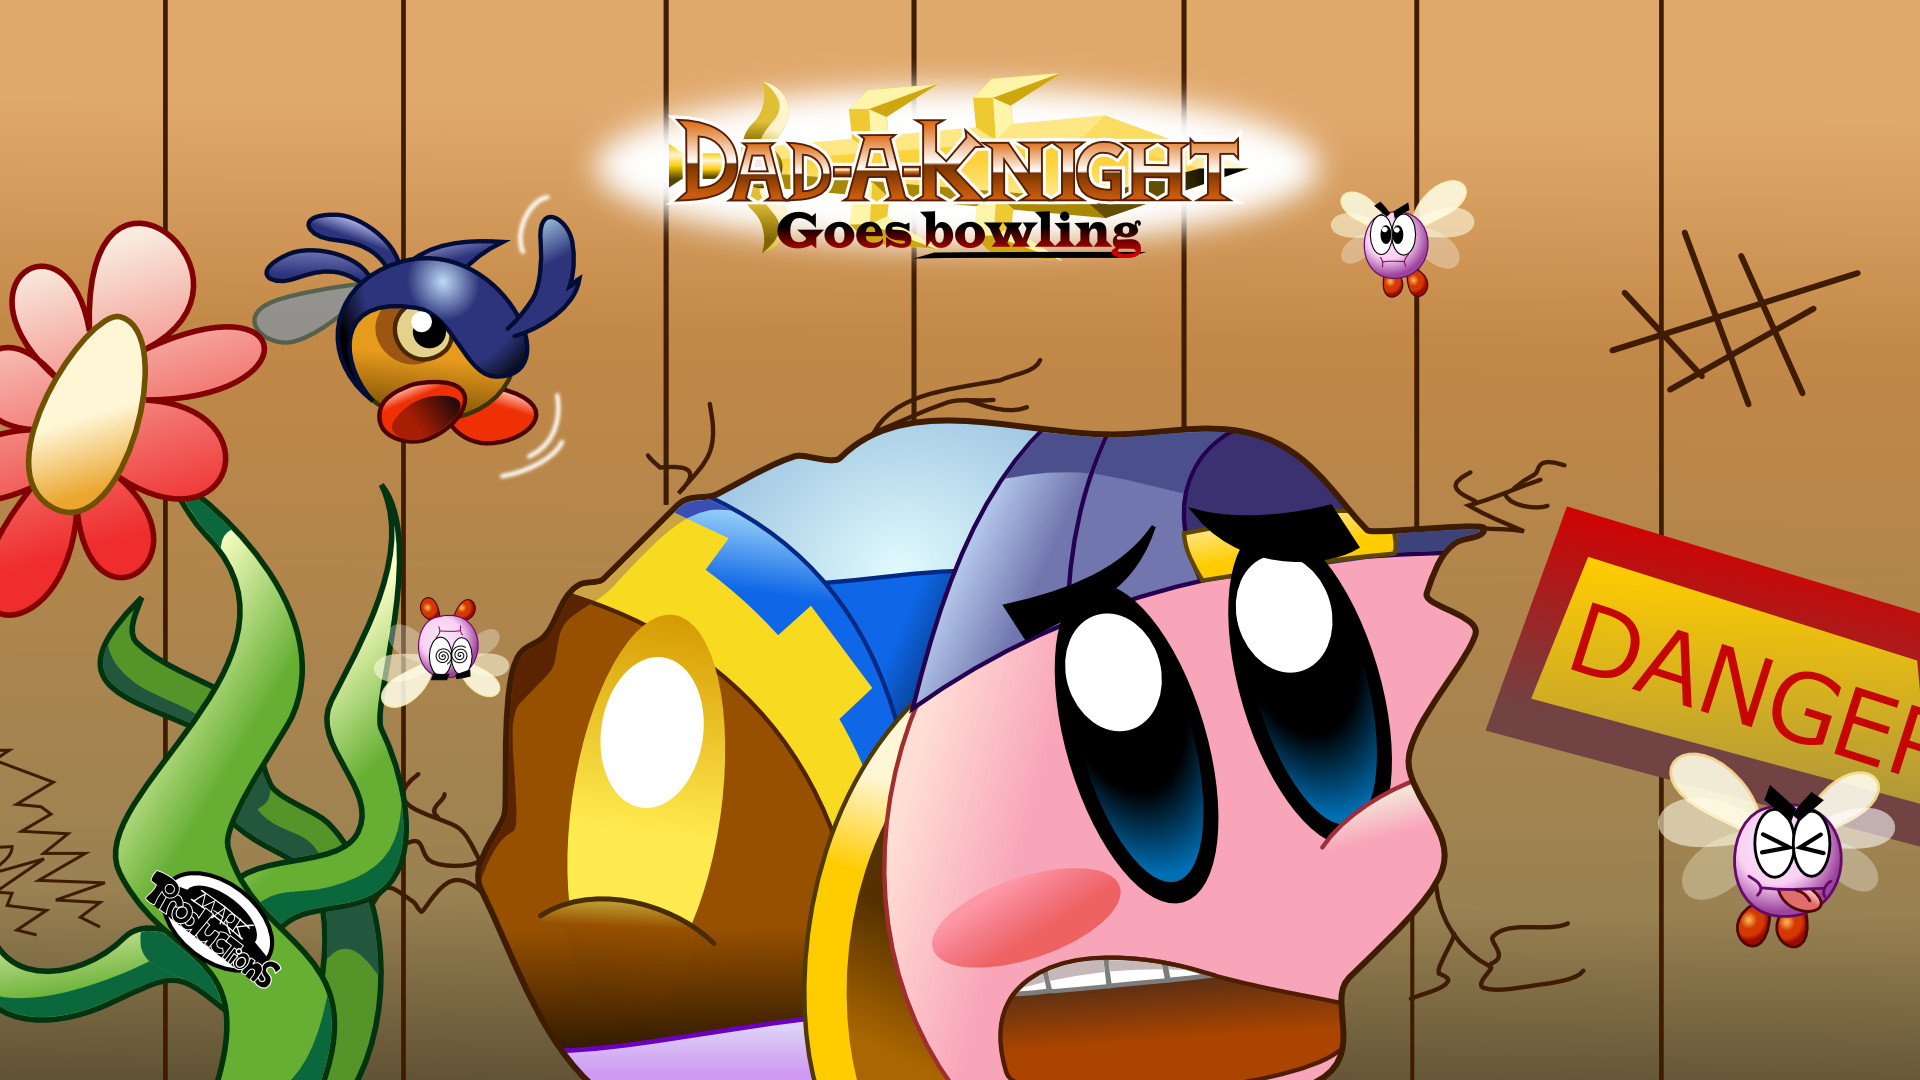 … Dad-A-Knight Goes Bowling – Wallpaper by MarkProductions